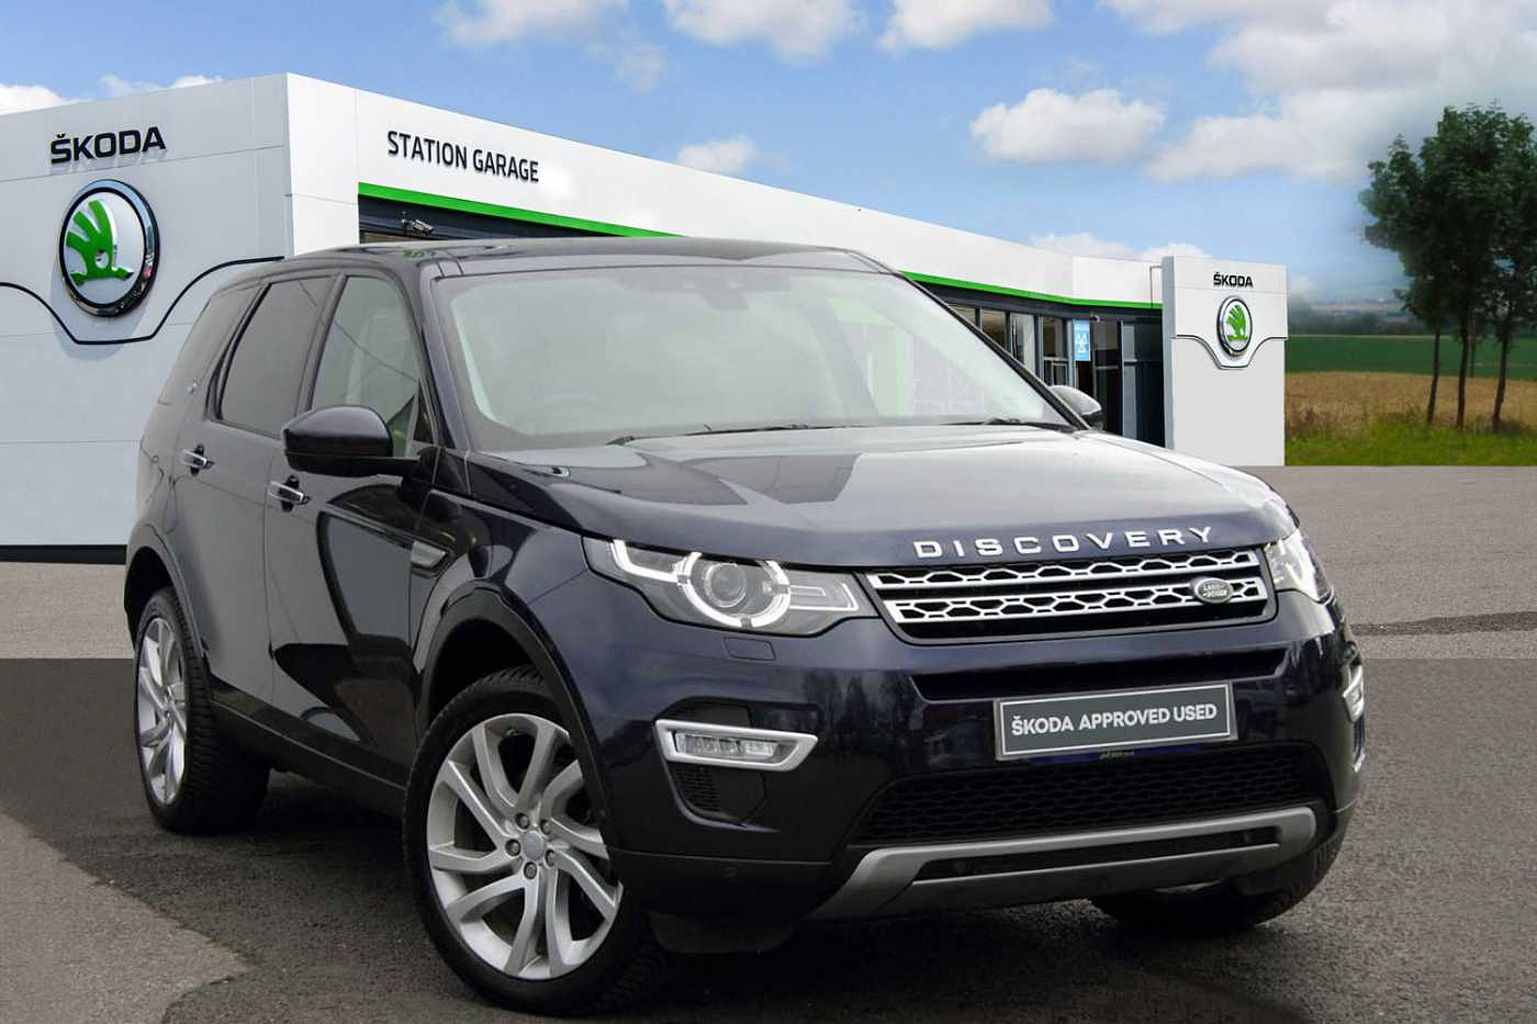 Land Rover Discovery Sport 2.0 TD4 (180ps) 4X4 HSE Luxury SW